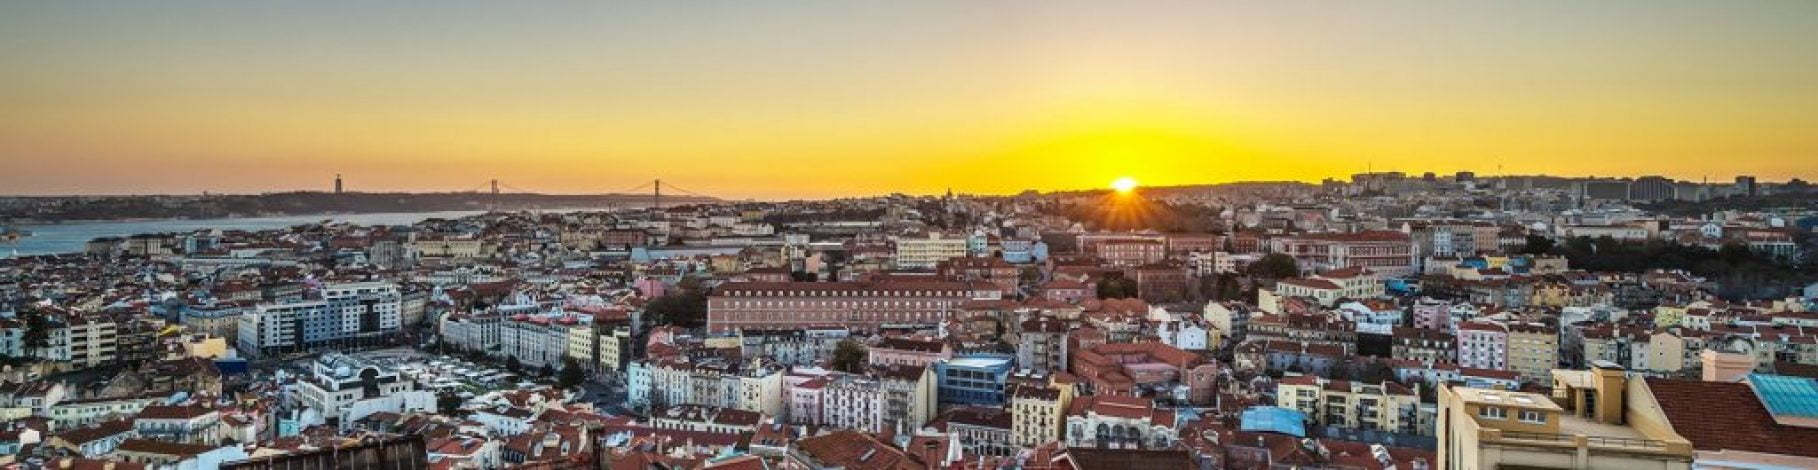 Removals to Portugal